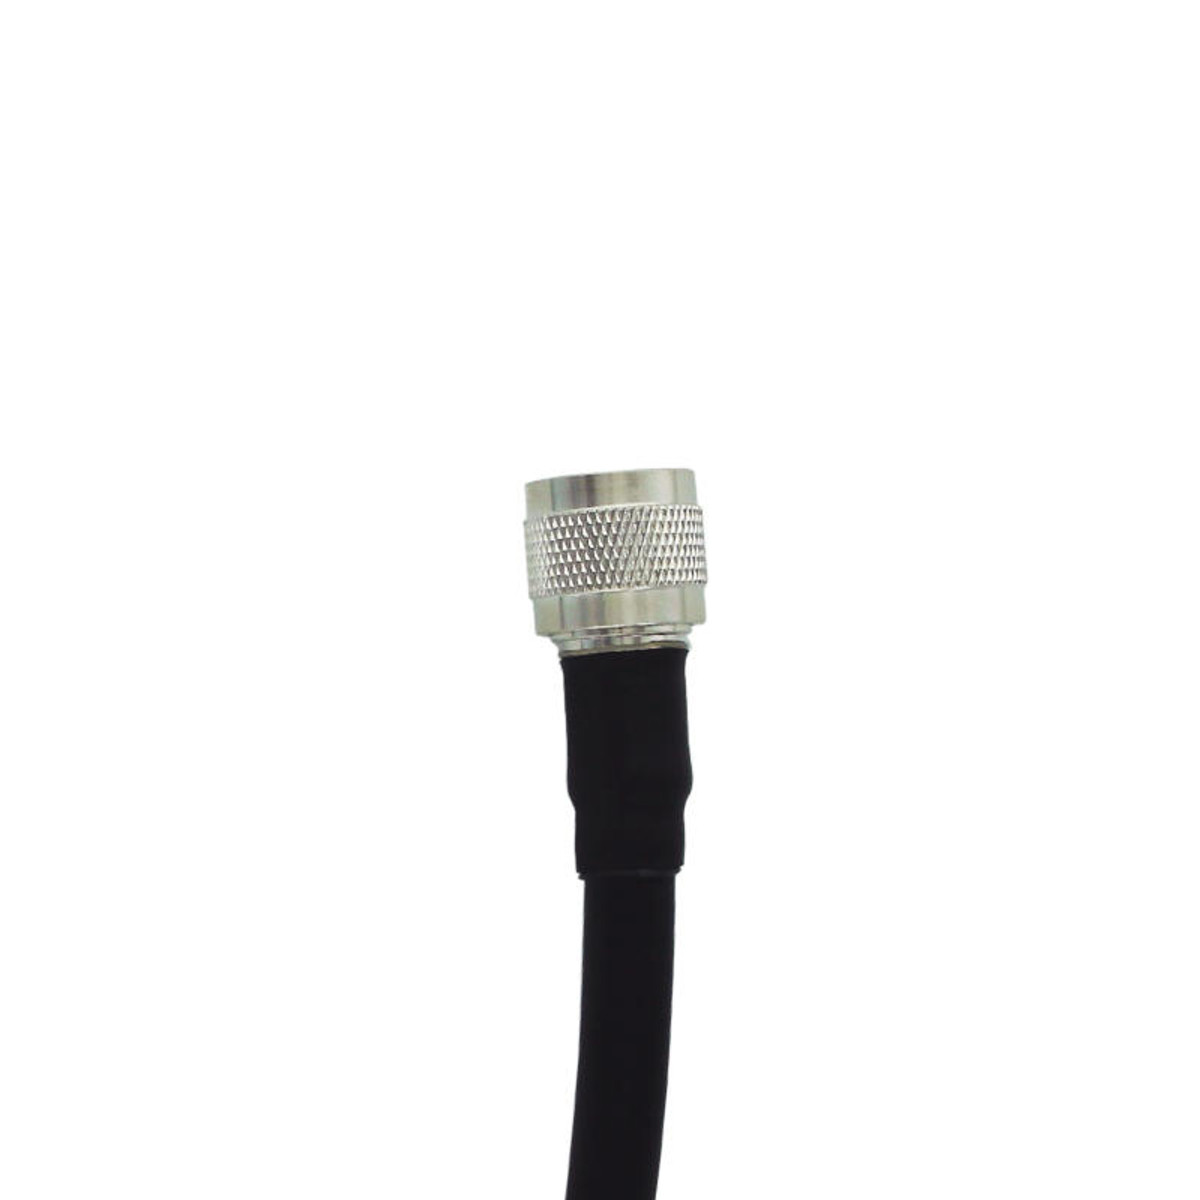 SureCall SureCall CM400 Cable with N-Connectors 2ft or SC-001-02